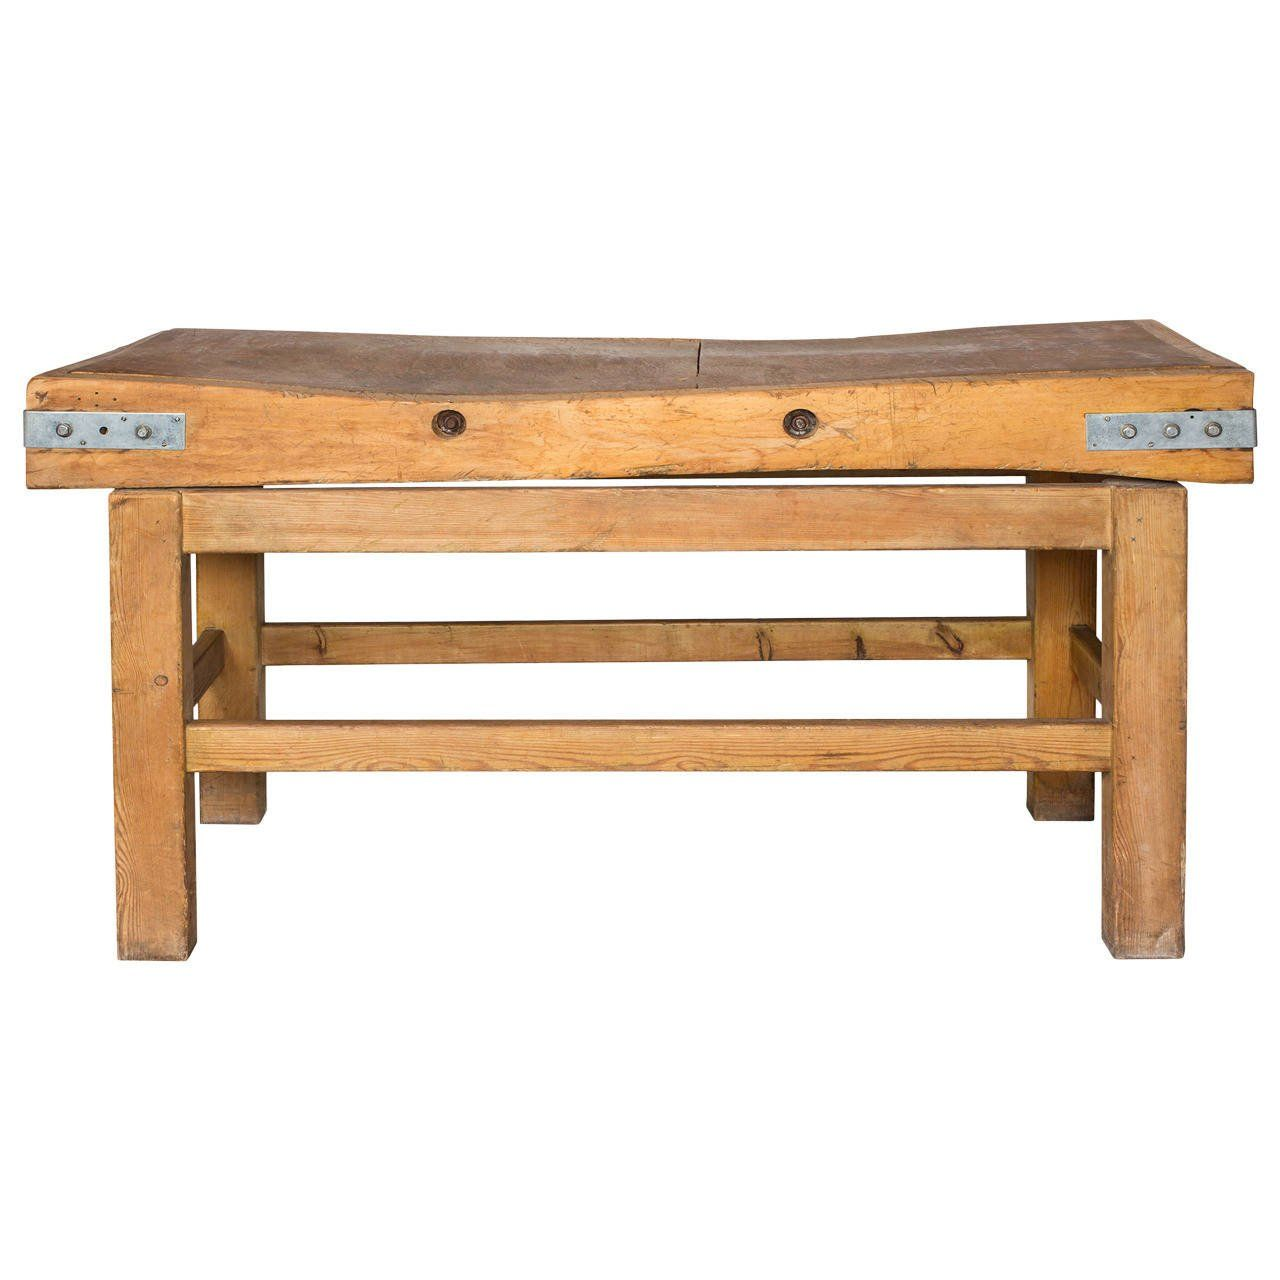 Butcher Block Table How Clean Top Ebay With Care For Wooden Cutting Board